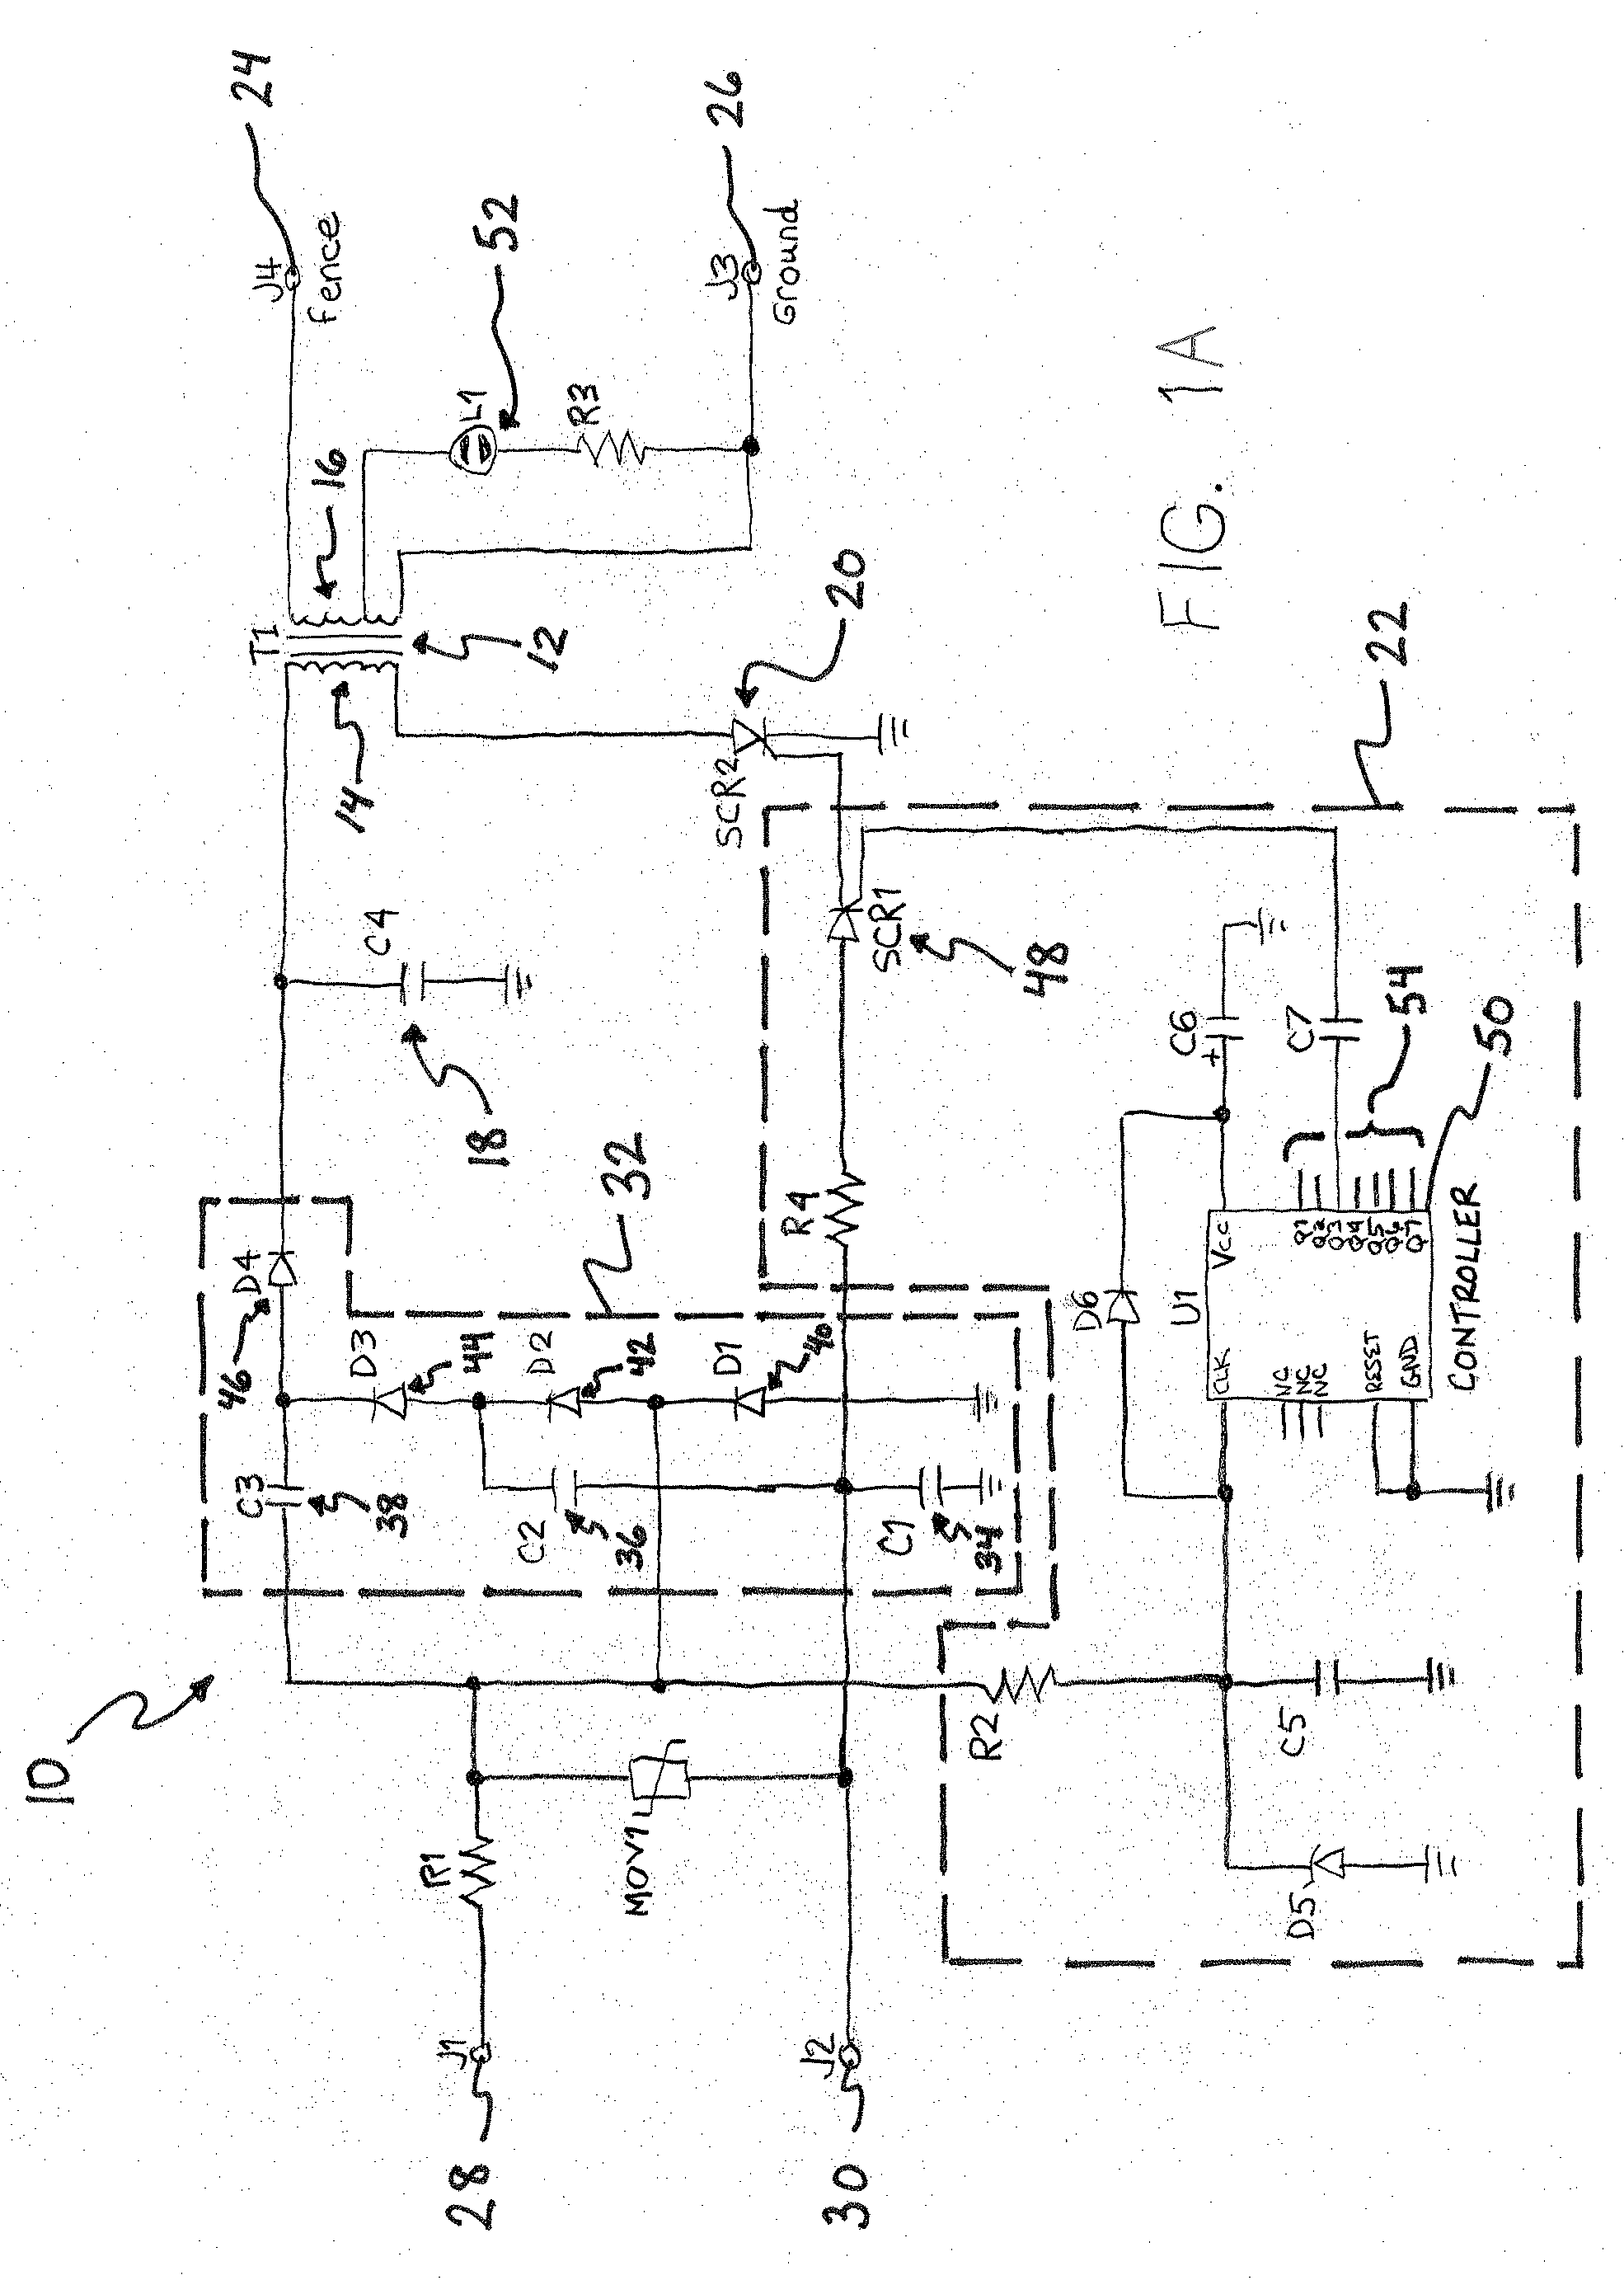 patent us7582988 - lethal electric fence energizer